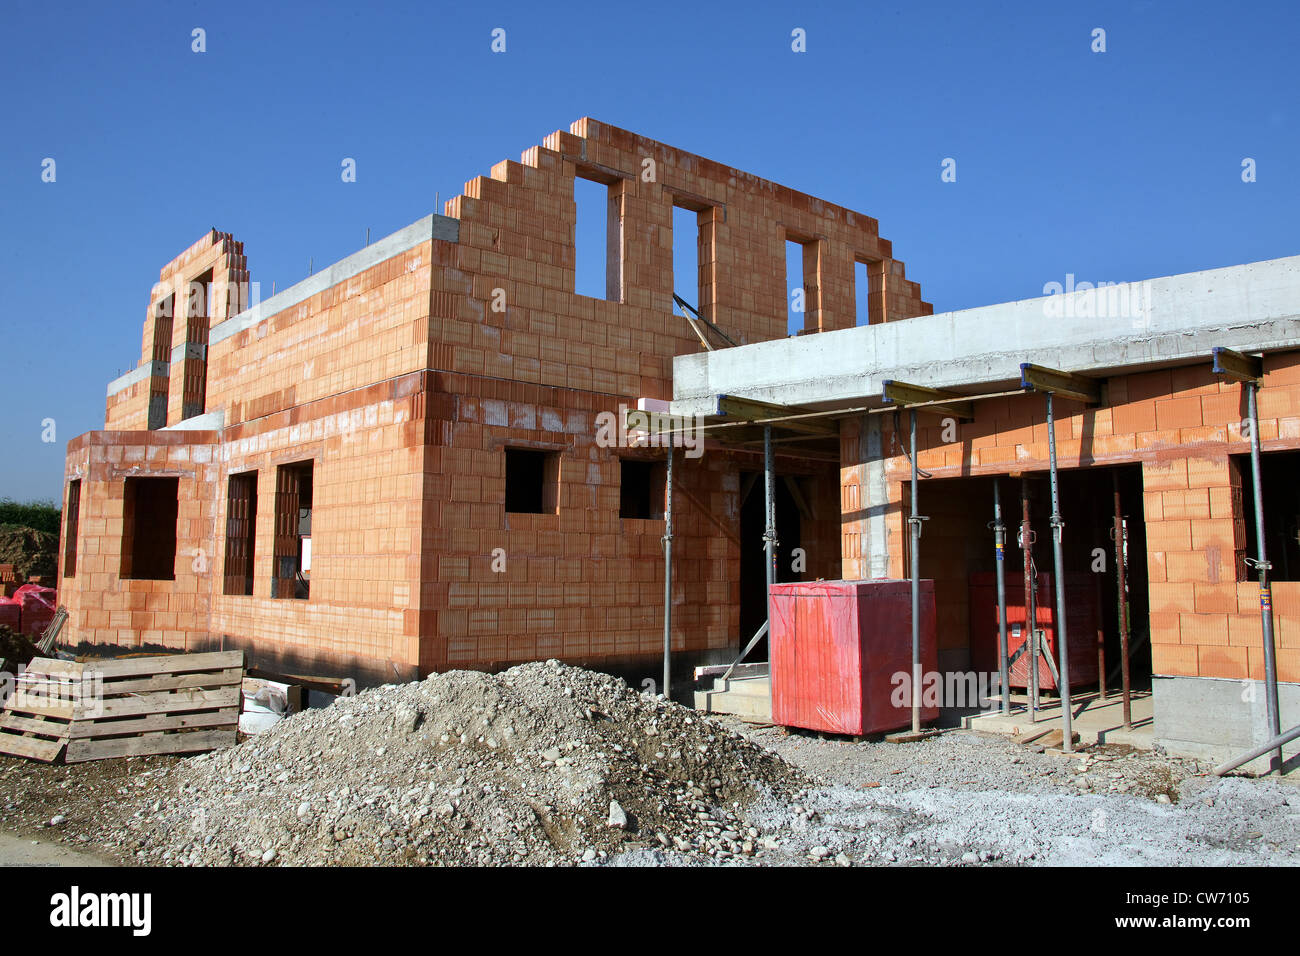 brick house brick buildings stockfotos brick house brick buildings bilder alamy. Black Bedroom Furniture Sets. Home Design Ideas